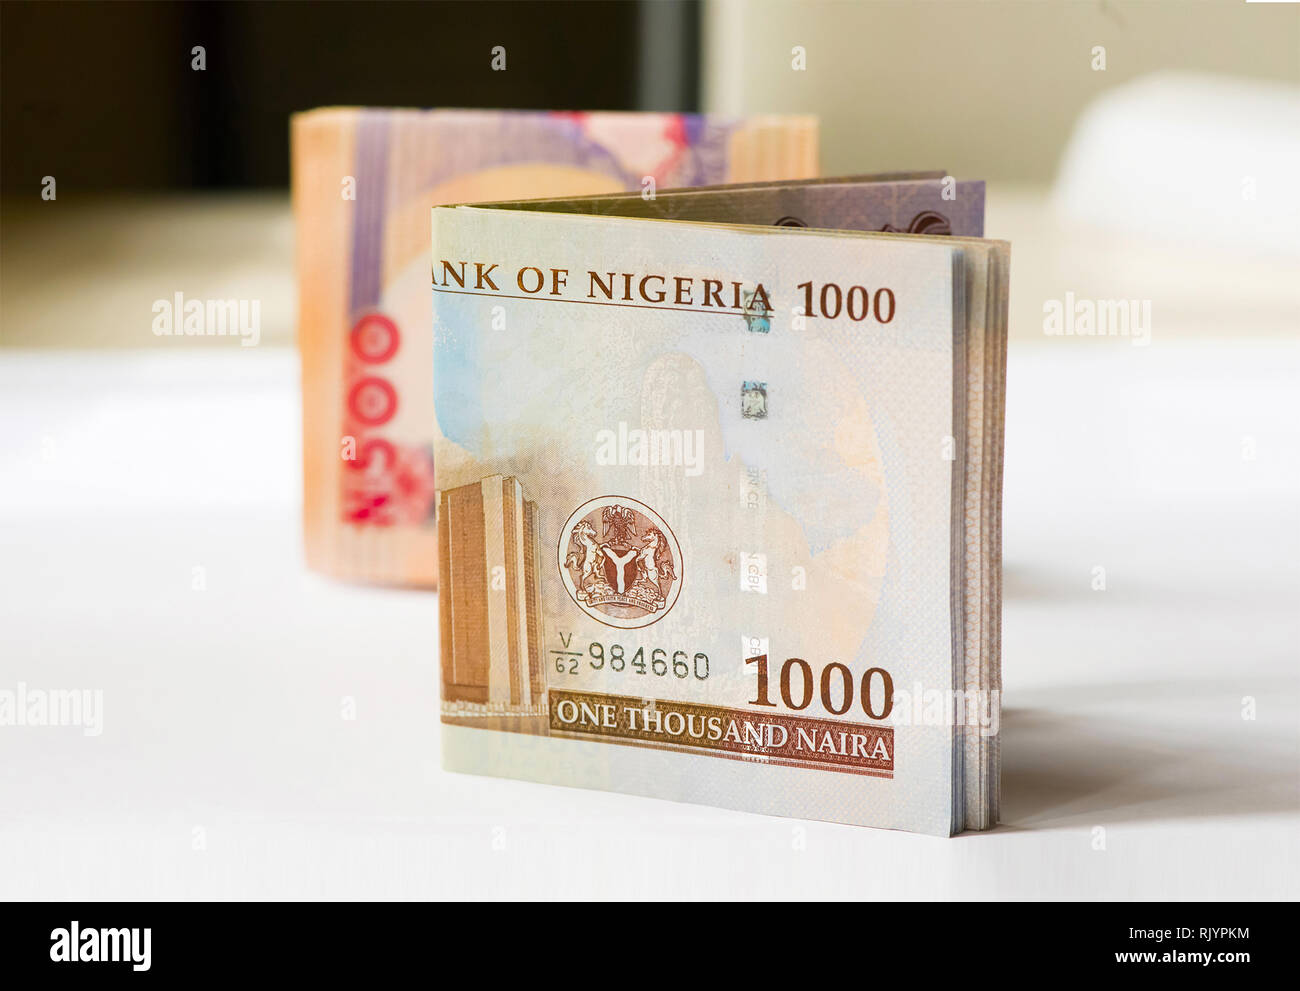 Nigerian Money - A folded wad of 1000 and 500 Naira notes mixed together - Stock Image